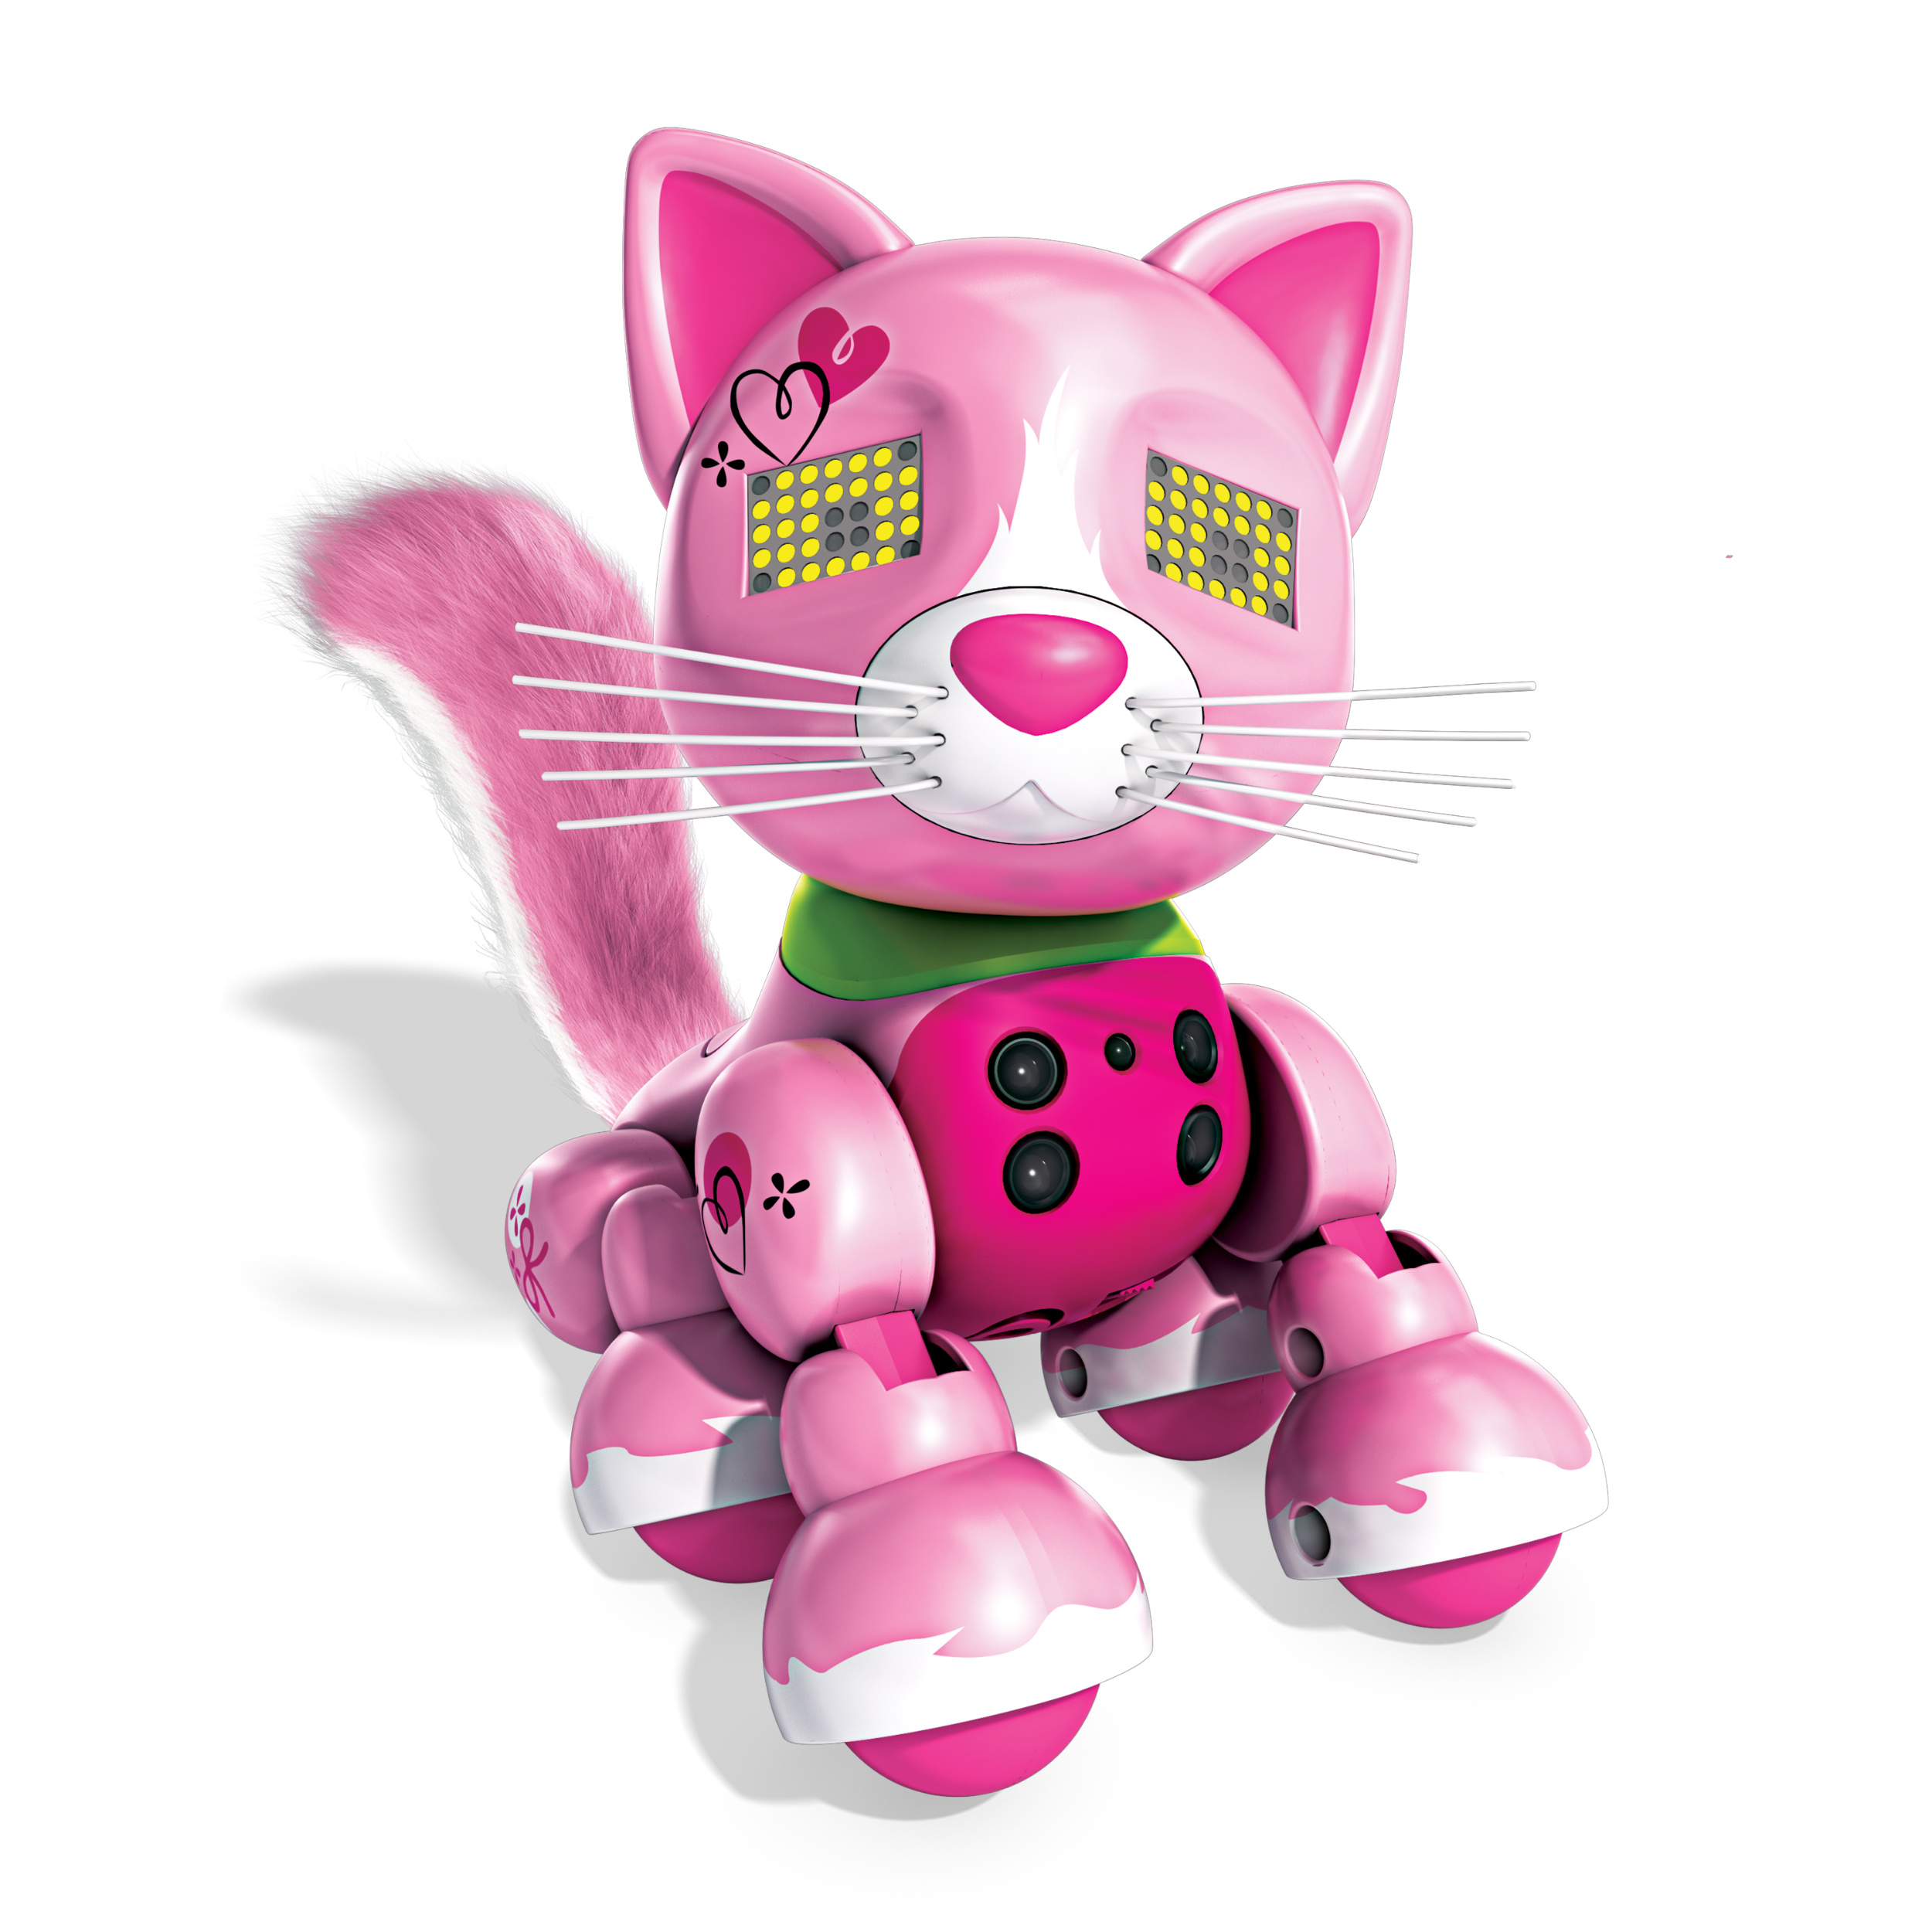 Zoomer Meowzies, Arista, Interactive Kitten with Lights, Sounds and Sensors, by Spin Master